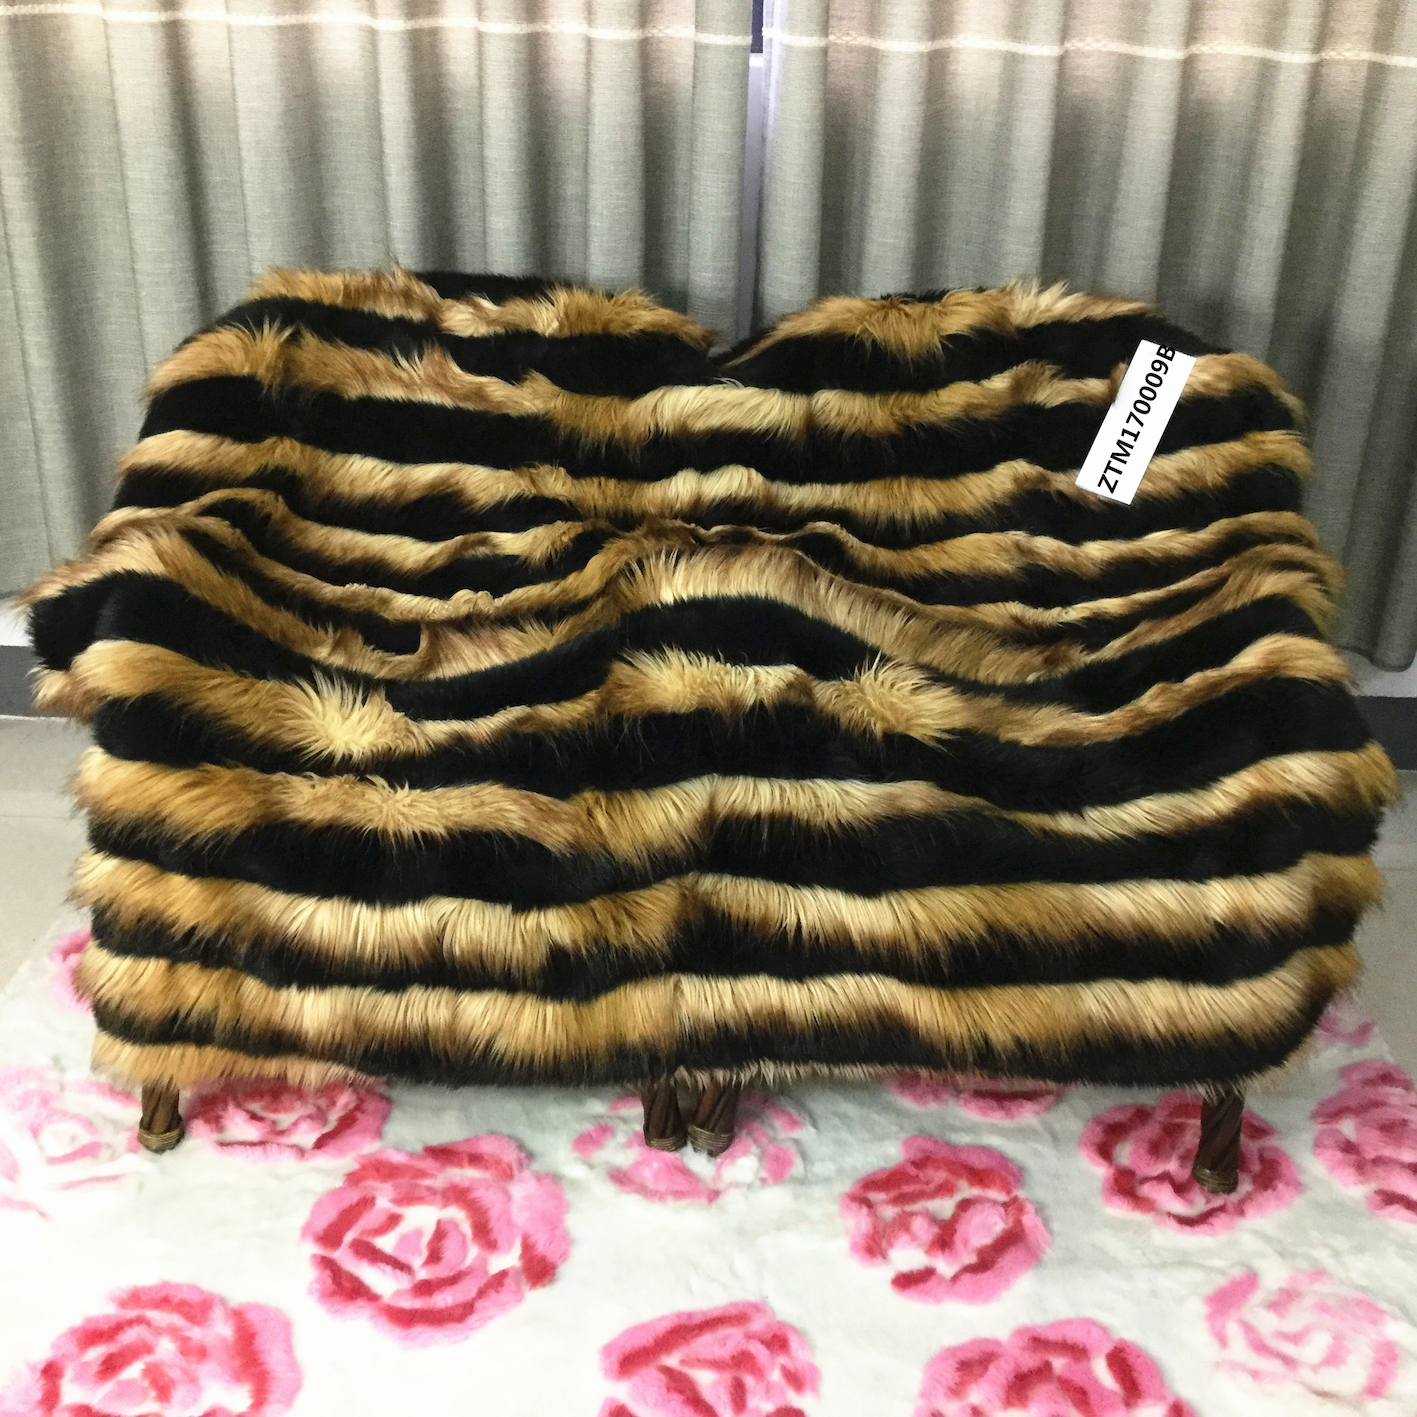 STABILE 2019 mink throws blankets super soft faux fur blankets